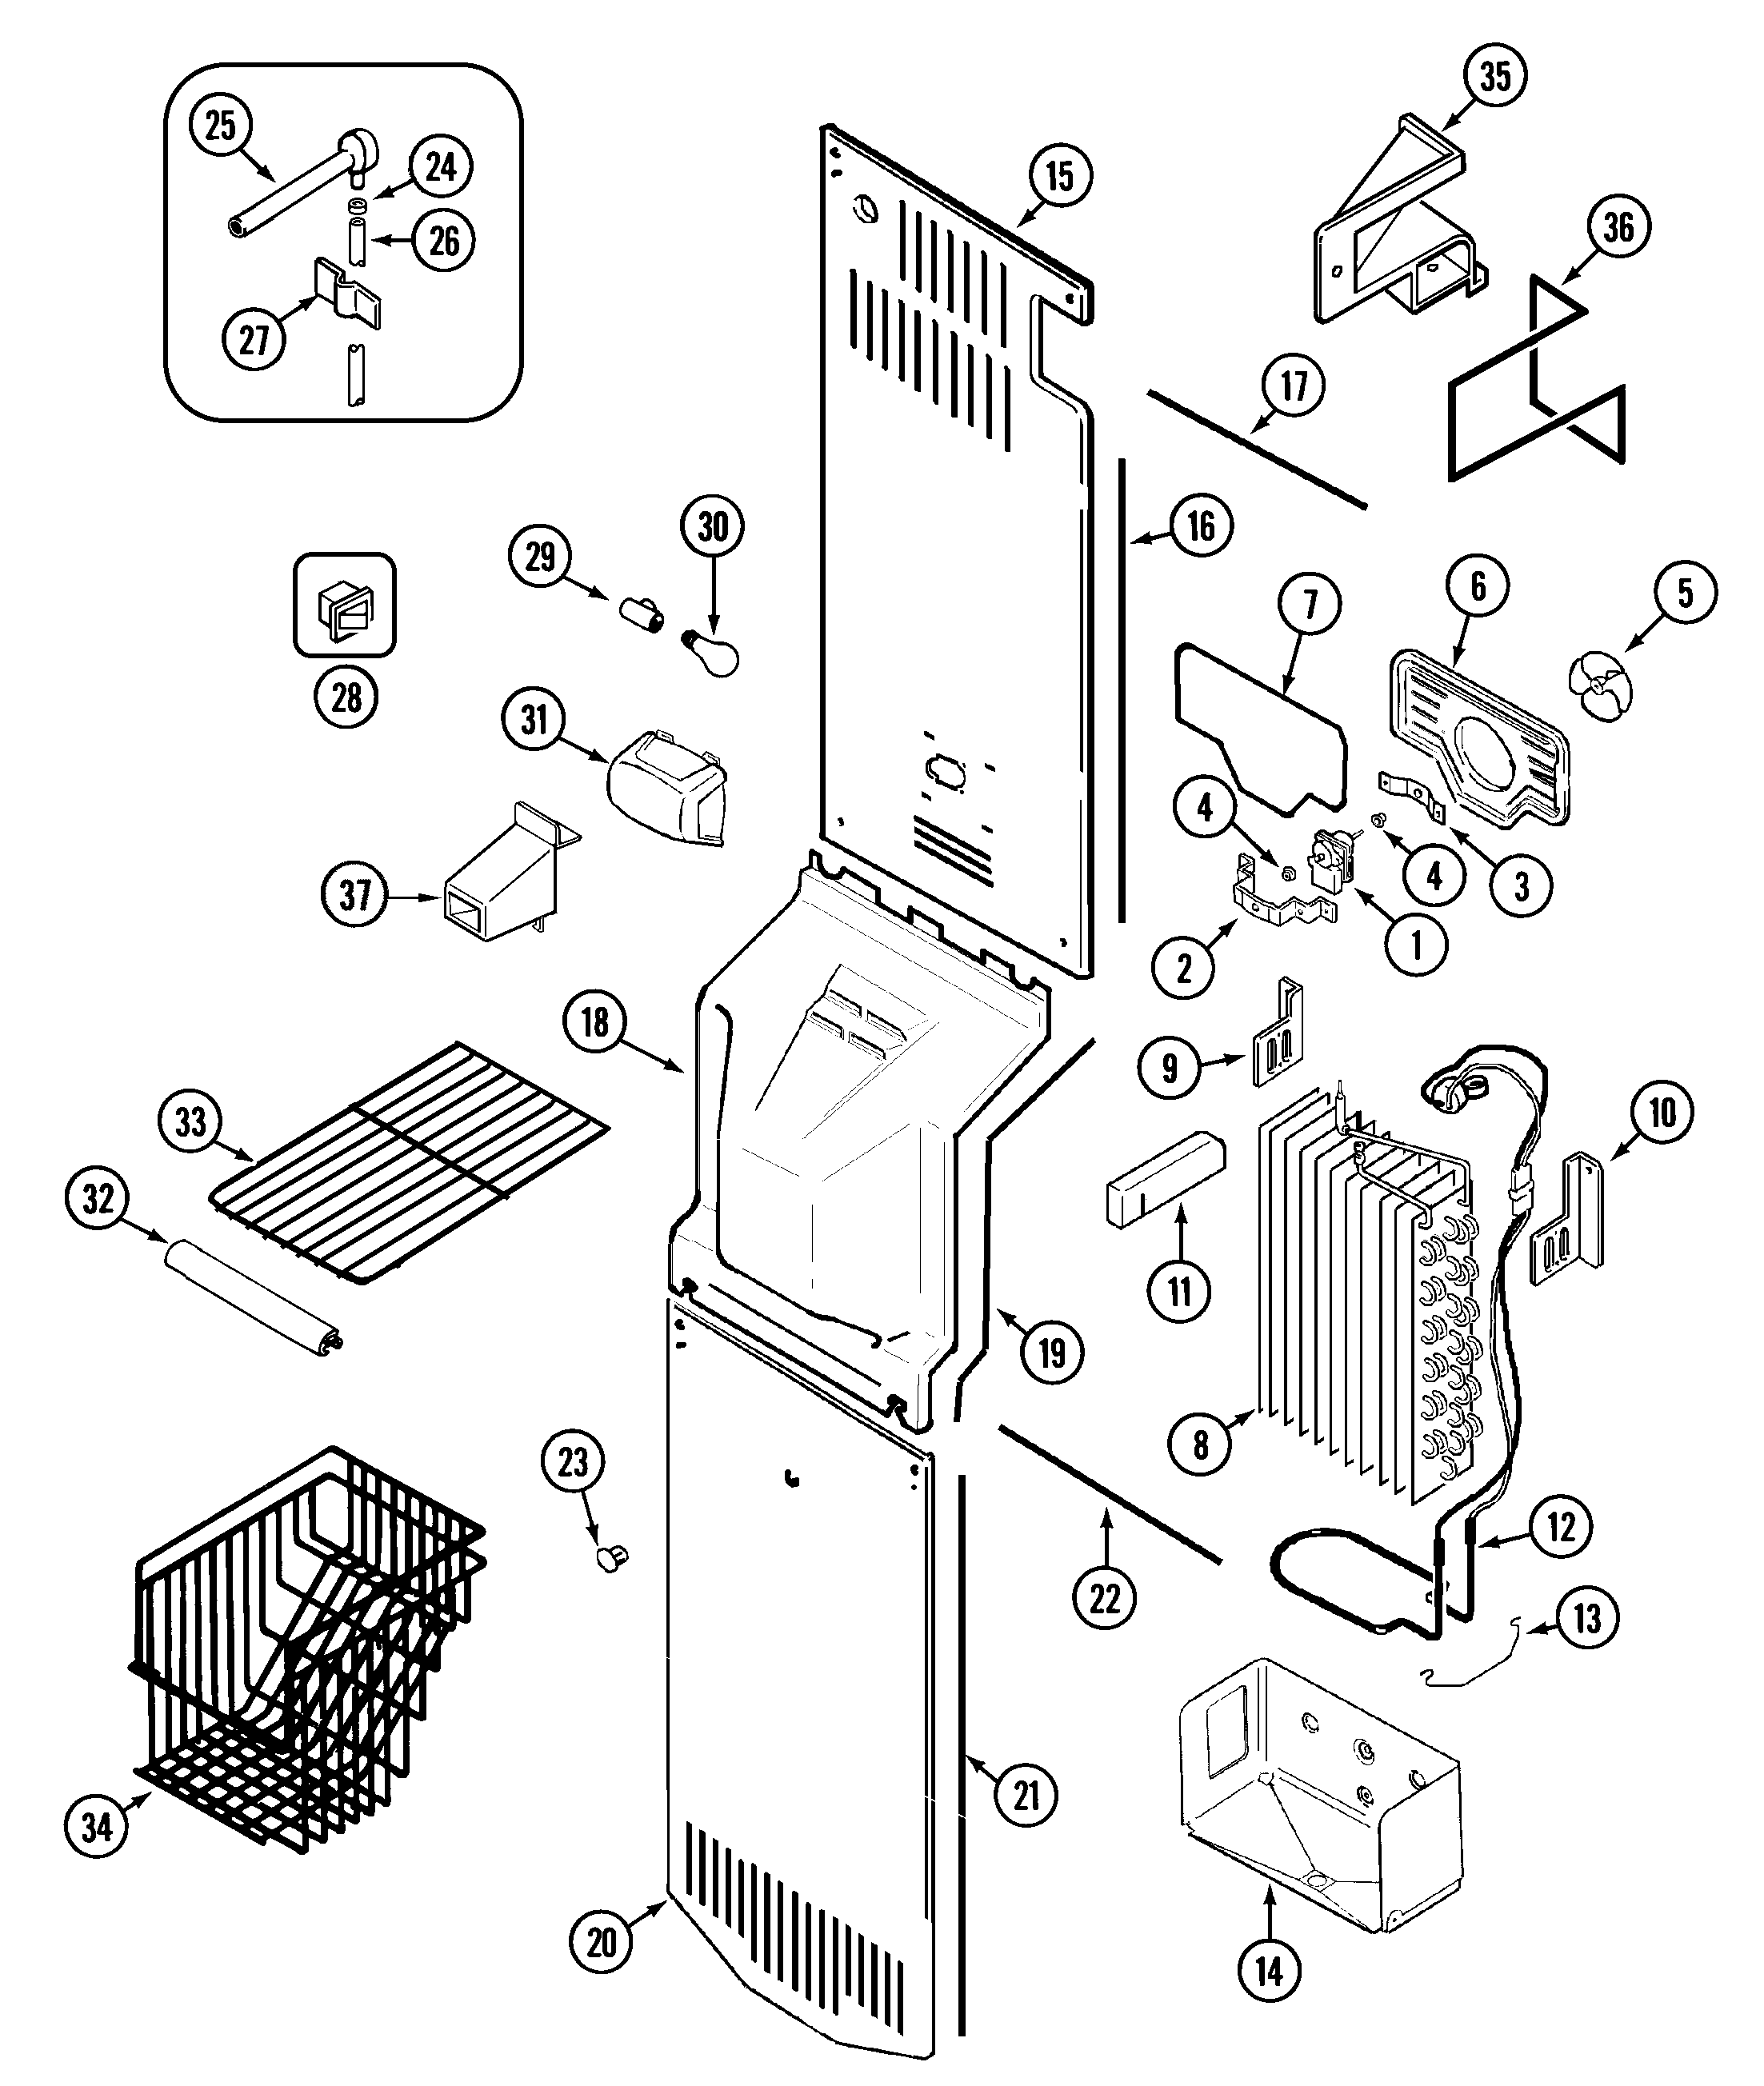 Maytag Side By Side Refrigerator Parts